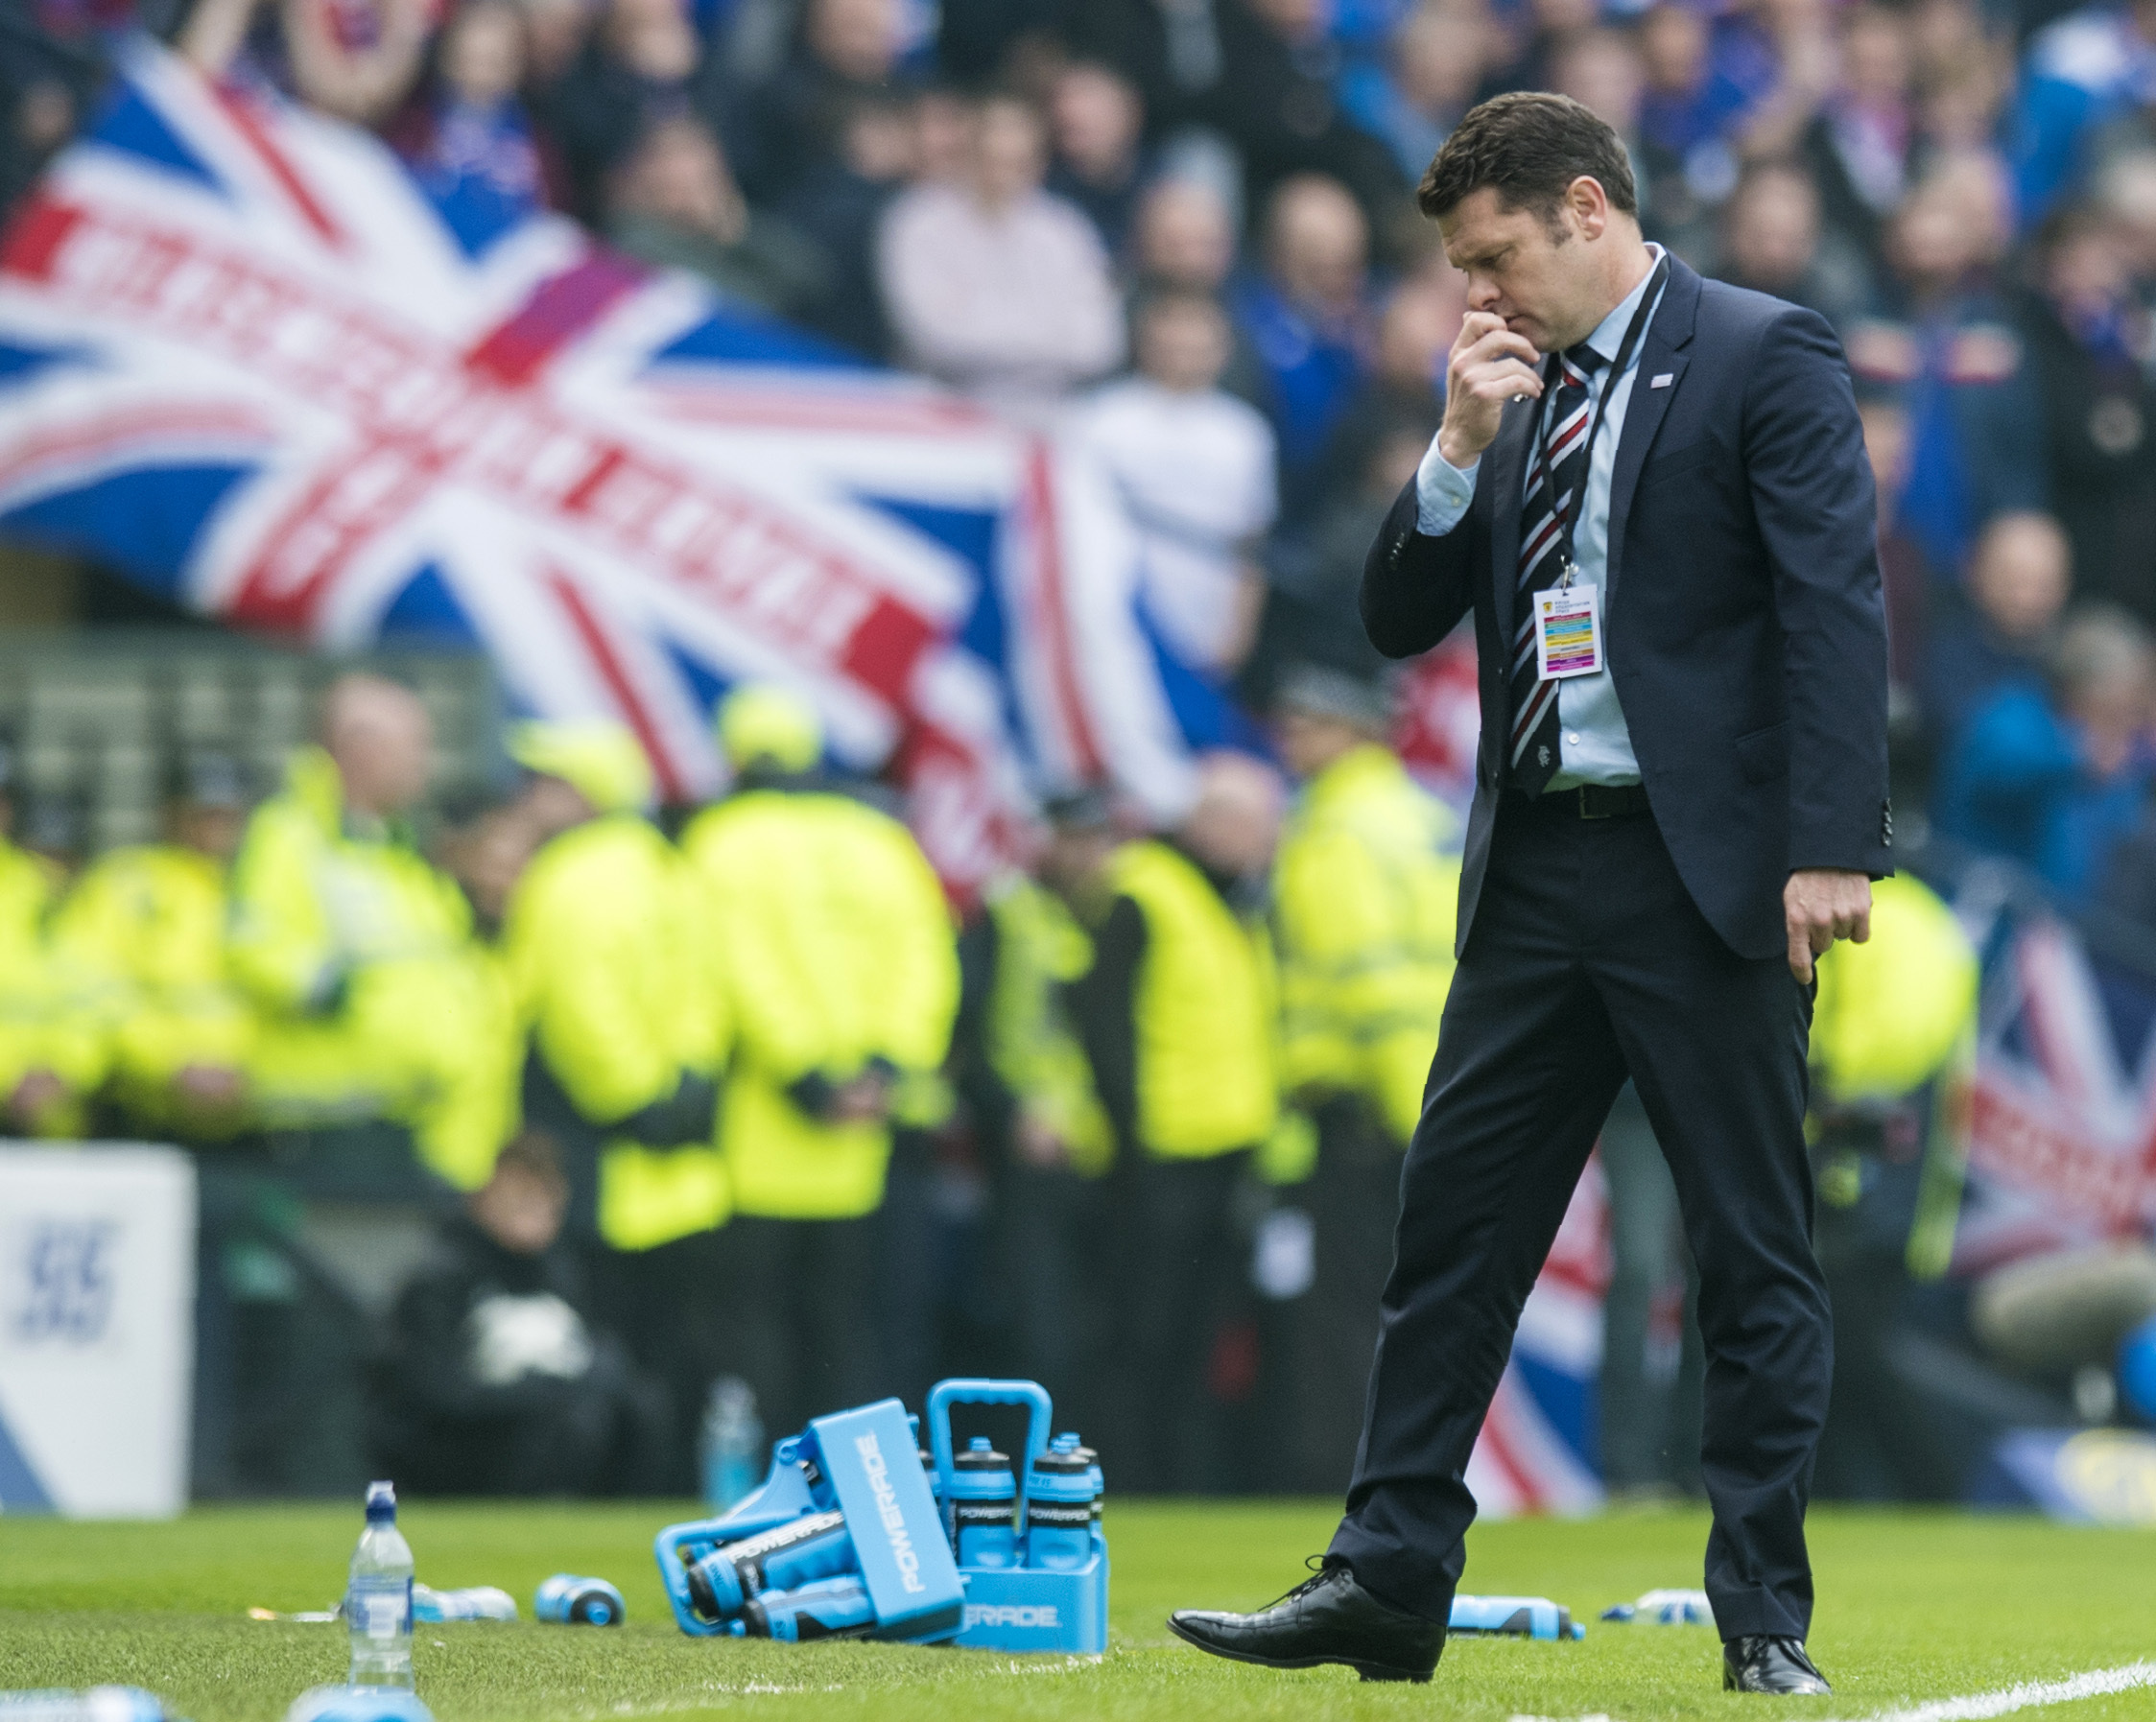 Rangers manager Graeme Murty is frustrated.